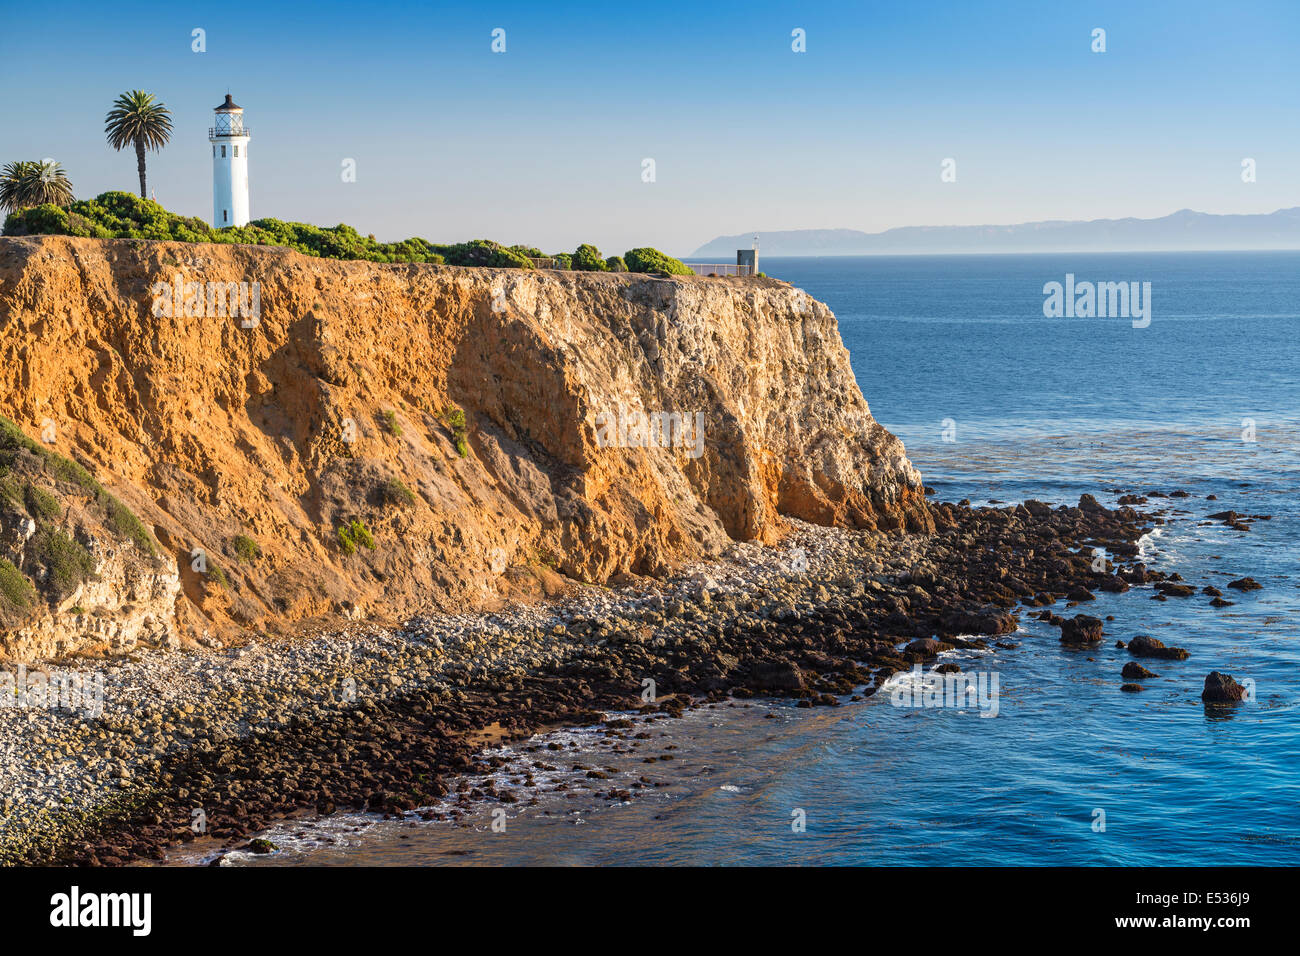 Los Angeles, California, USA at Point Vicente Lighthouse in Rancho Palos Verdes. - Stock Image